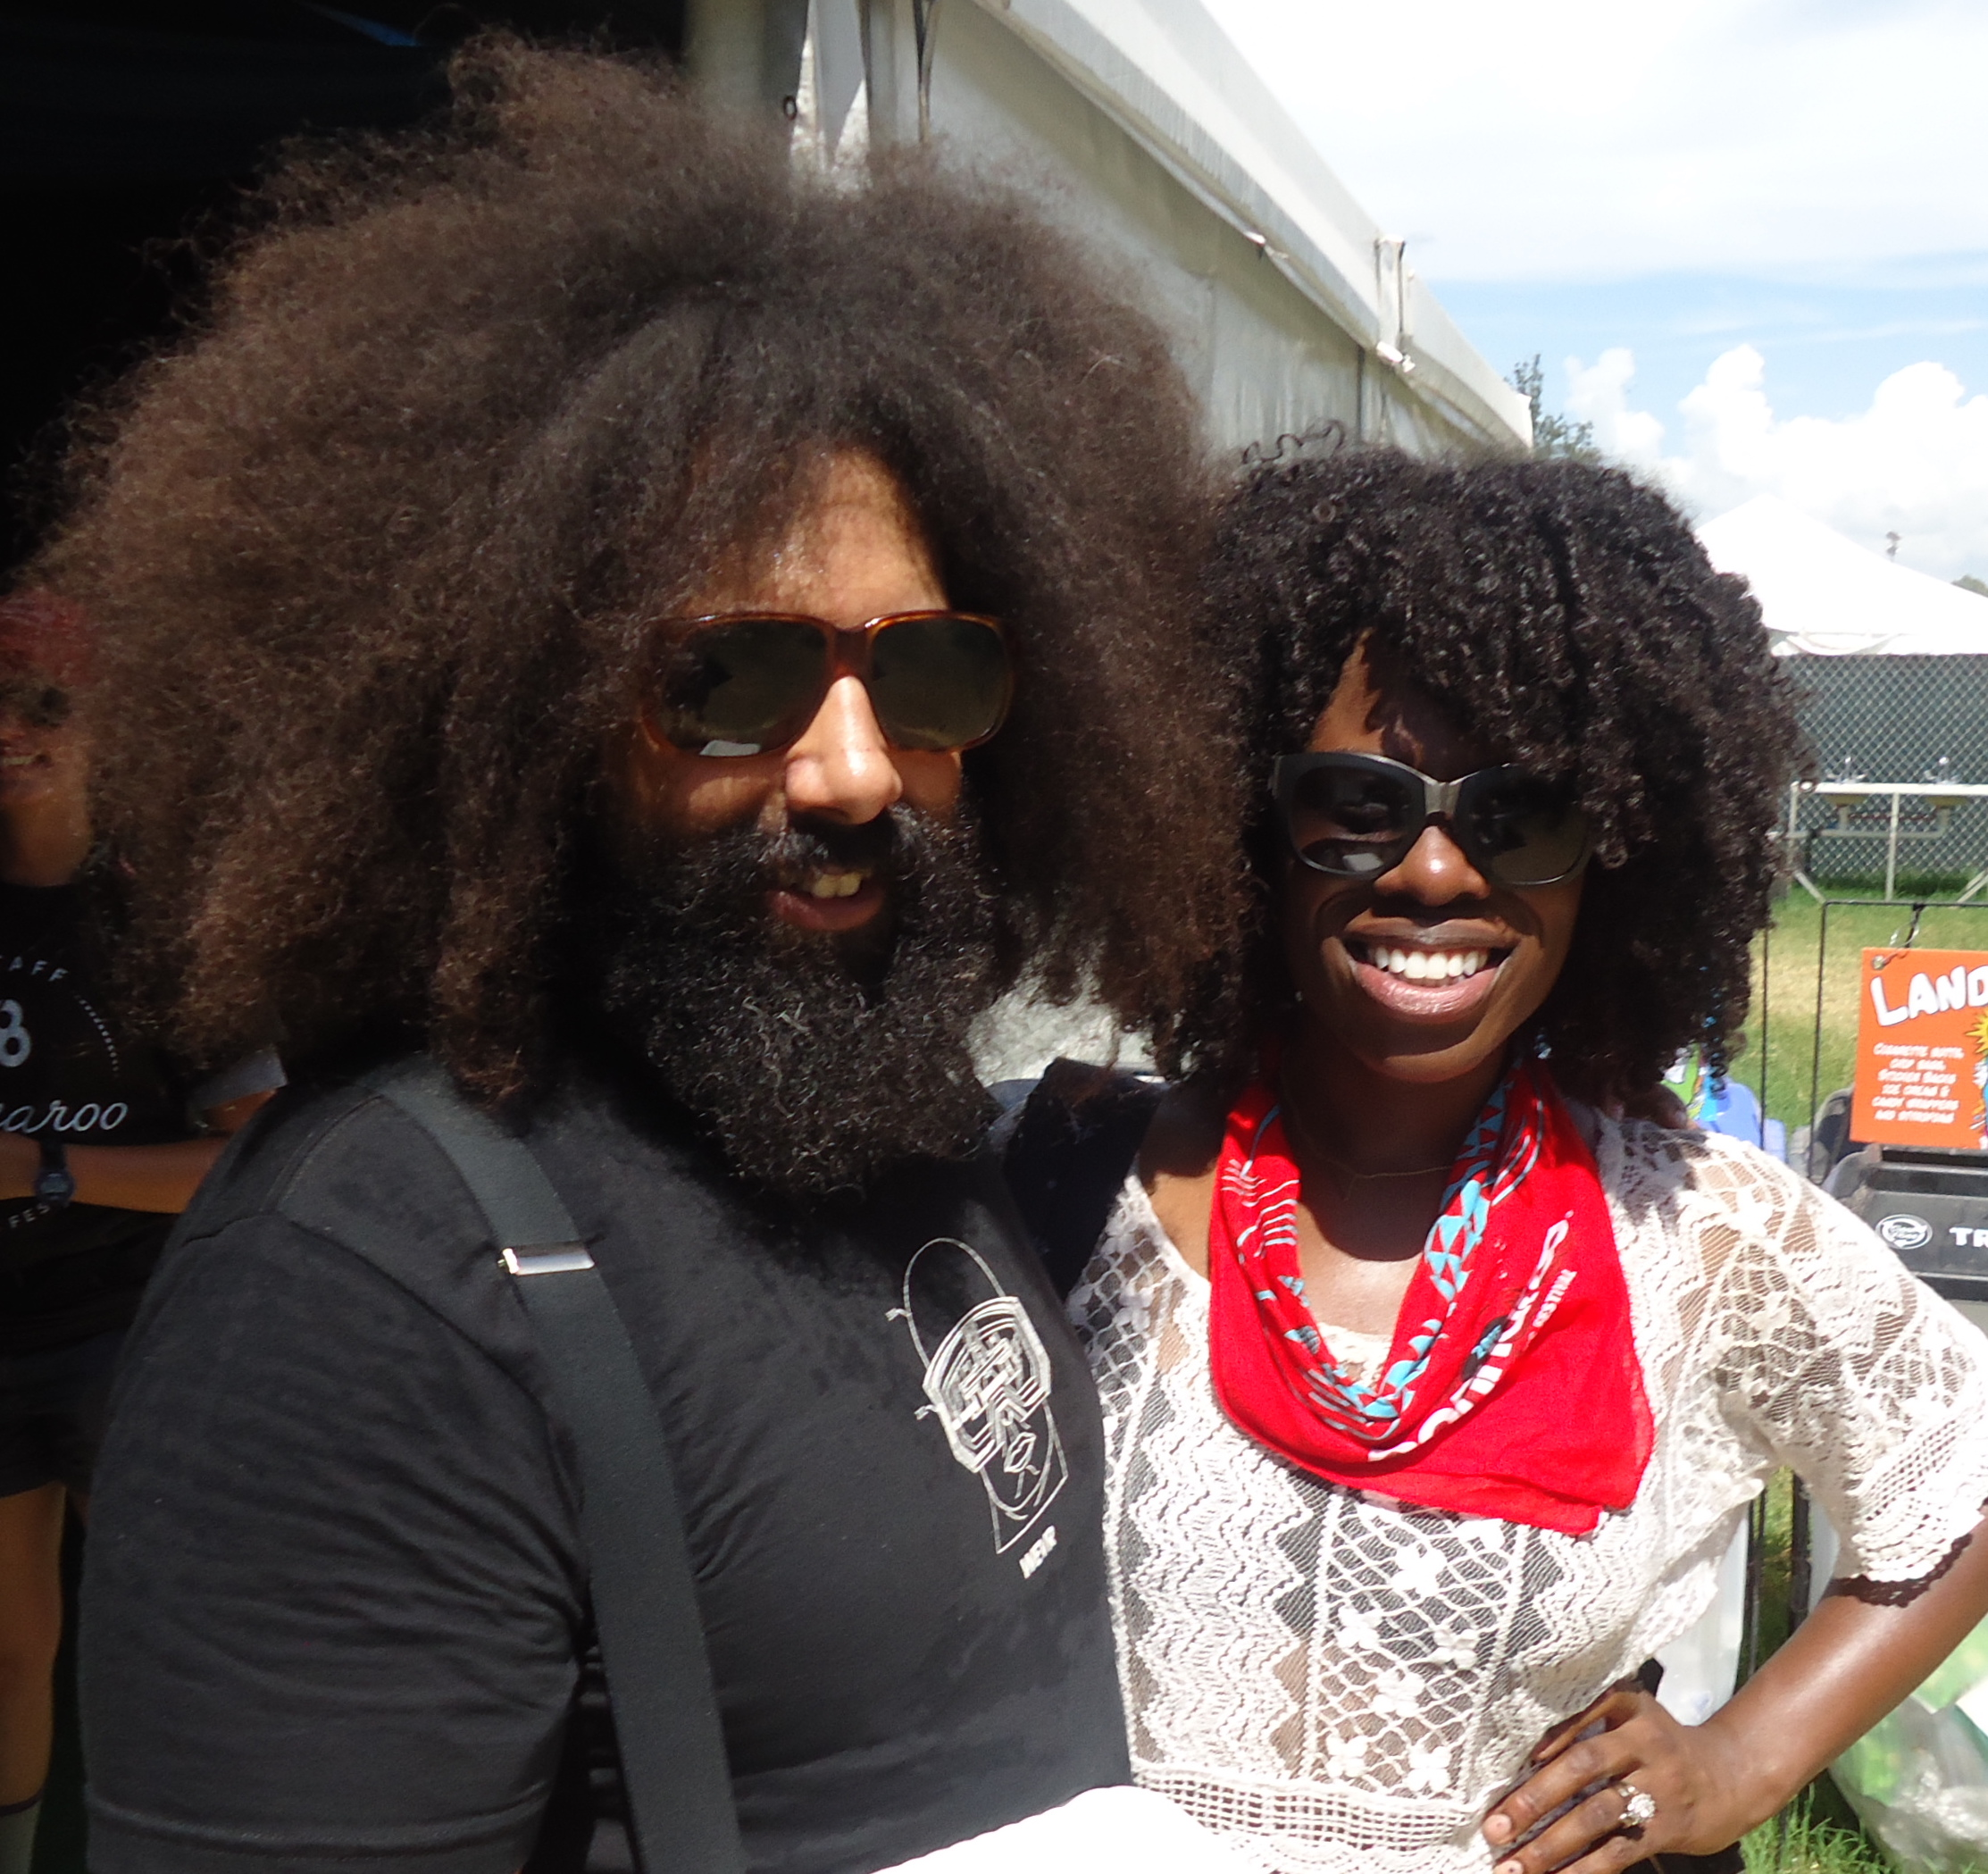 Reggie Watts and I